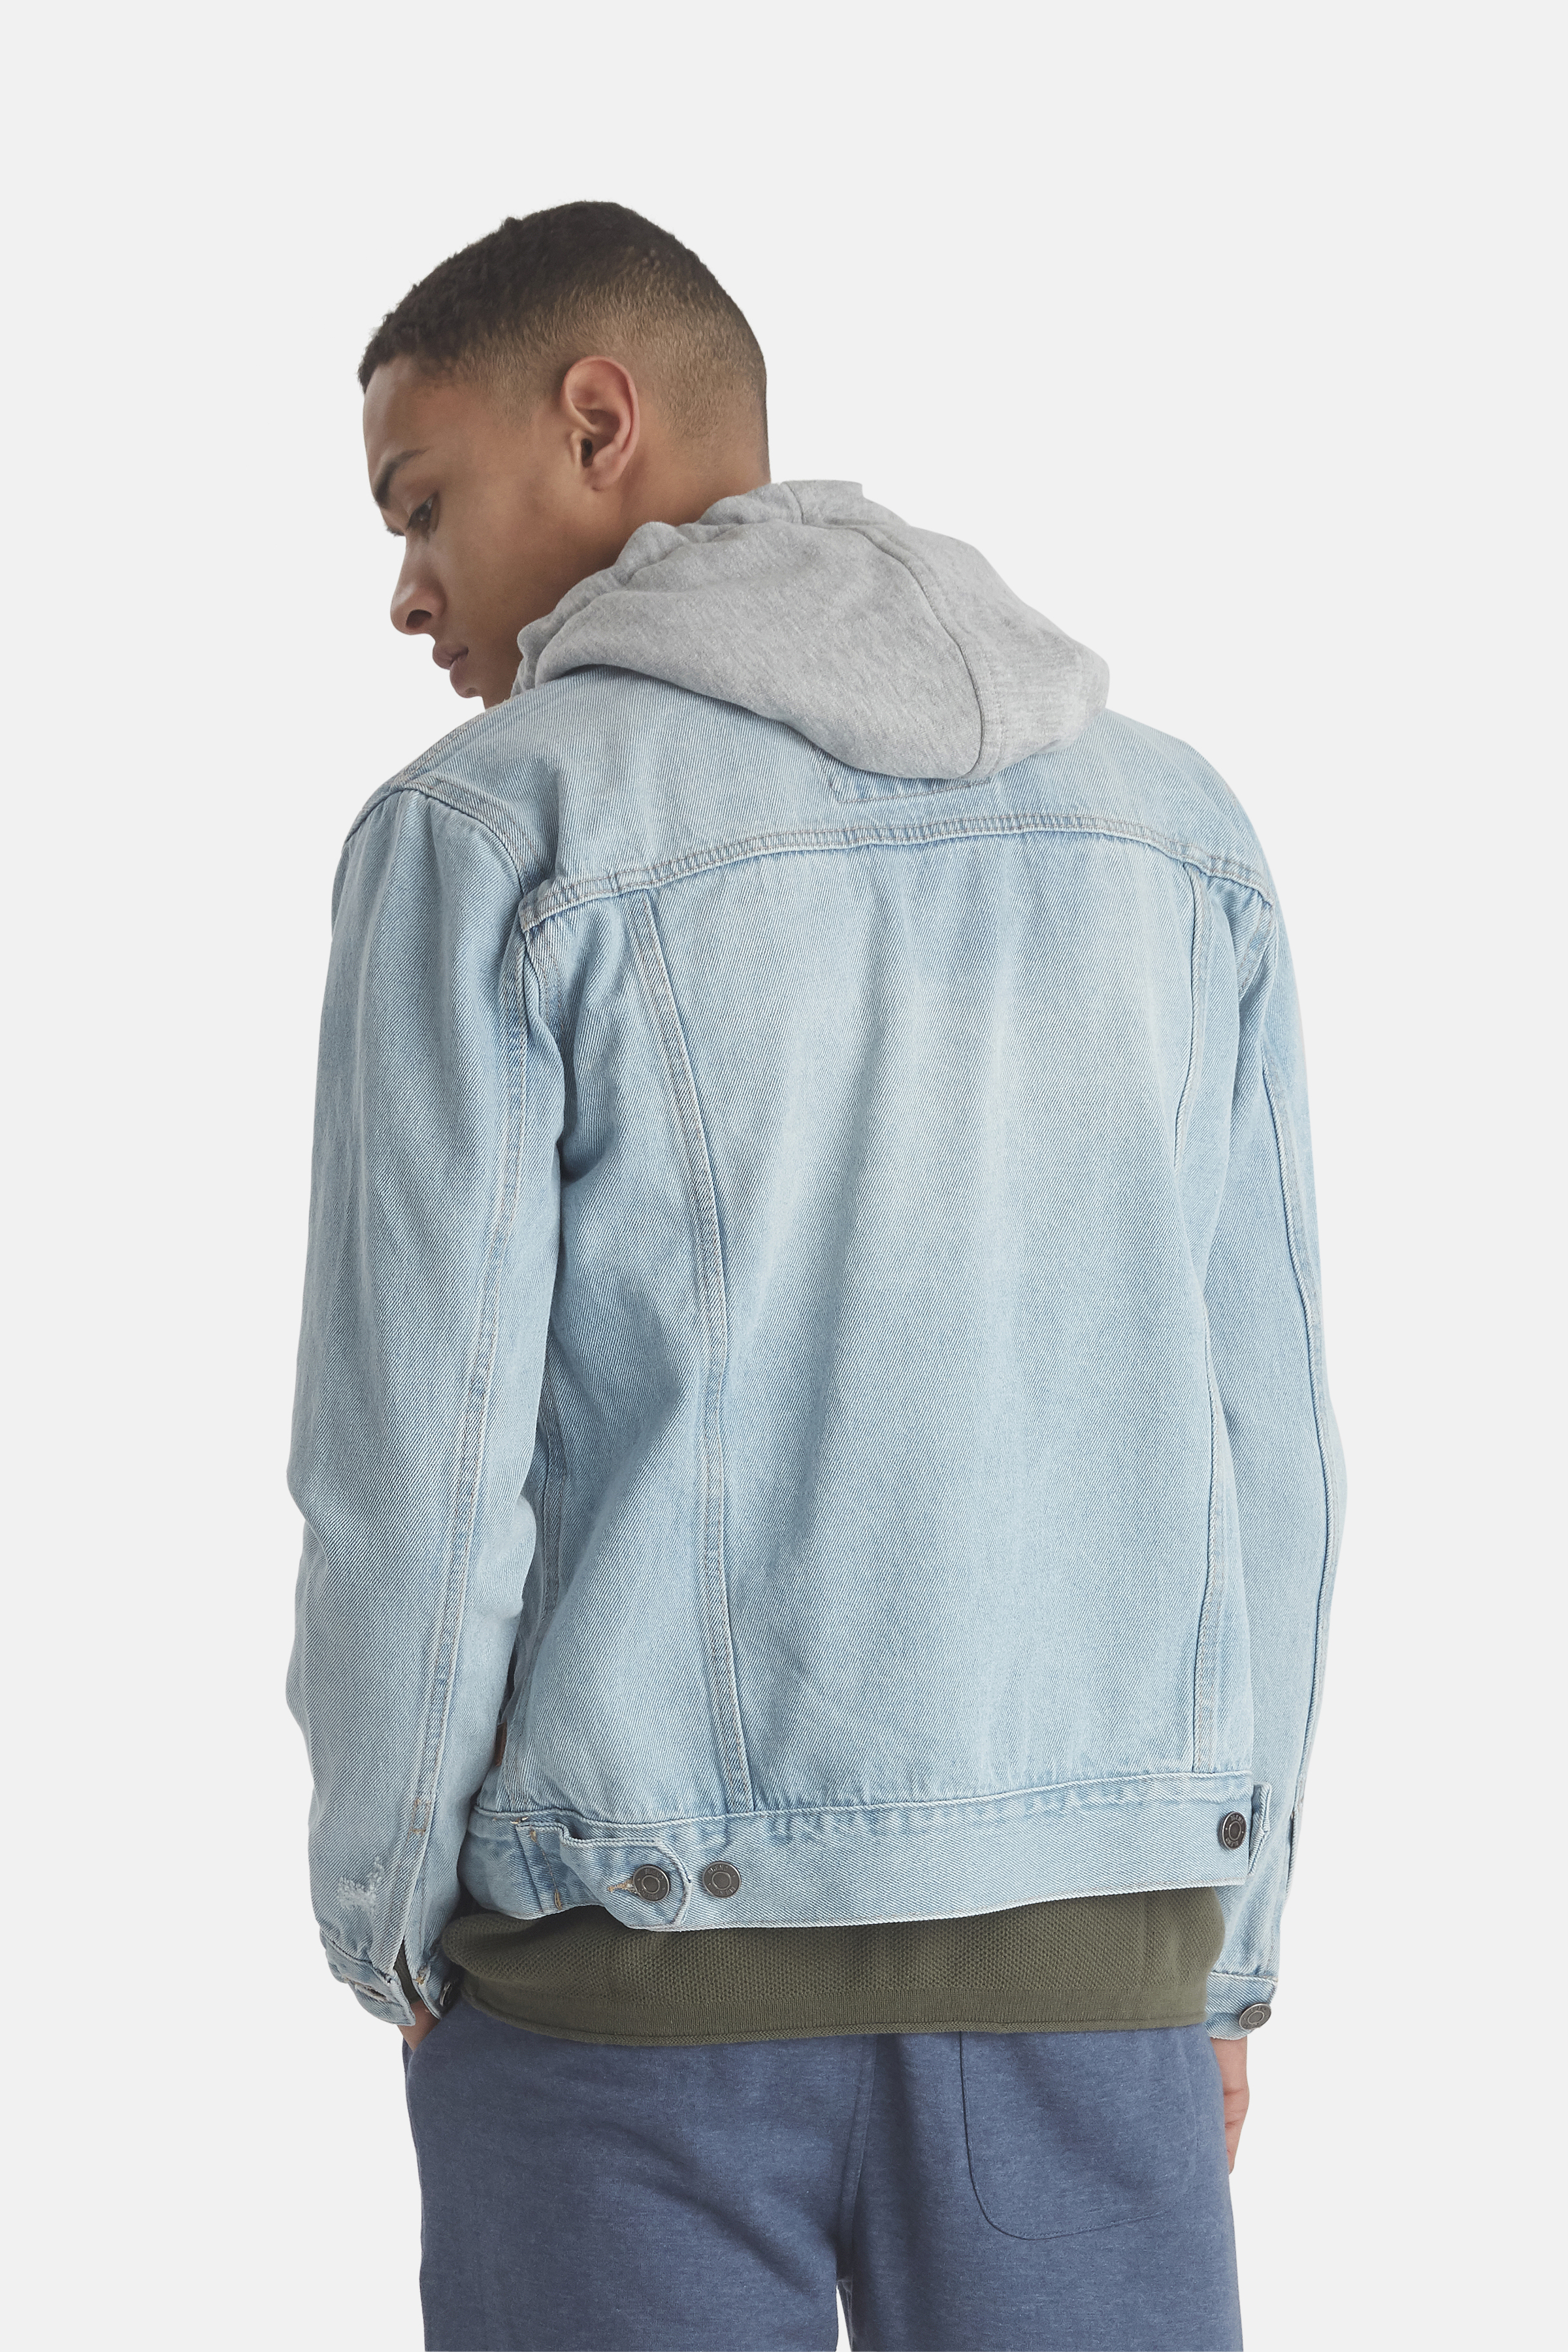 Denim light blue Outerwear fra Blend He – Køb Denim light blue Outerwear fra str. S-XL her